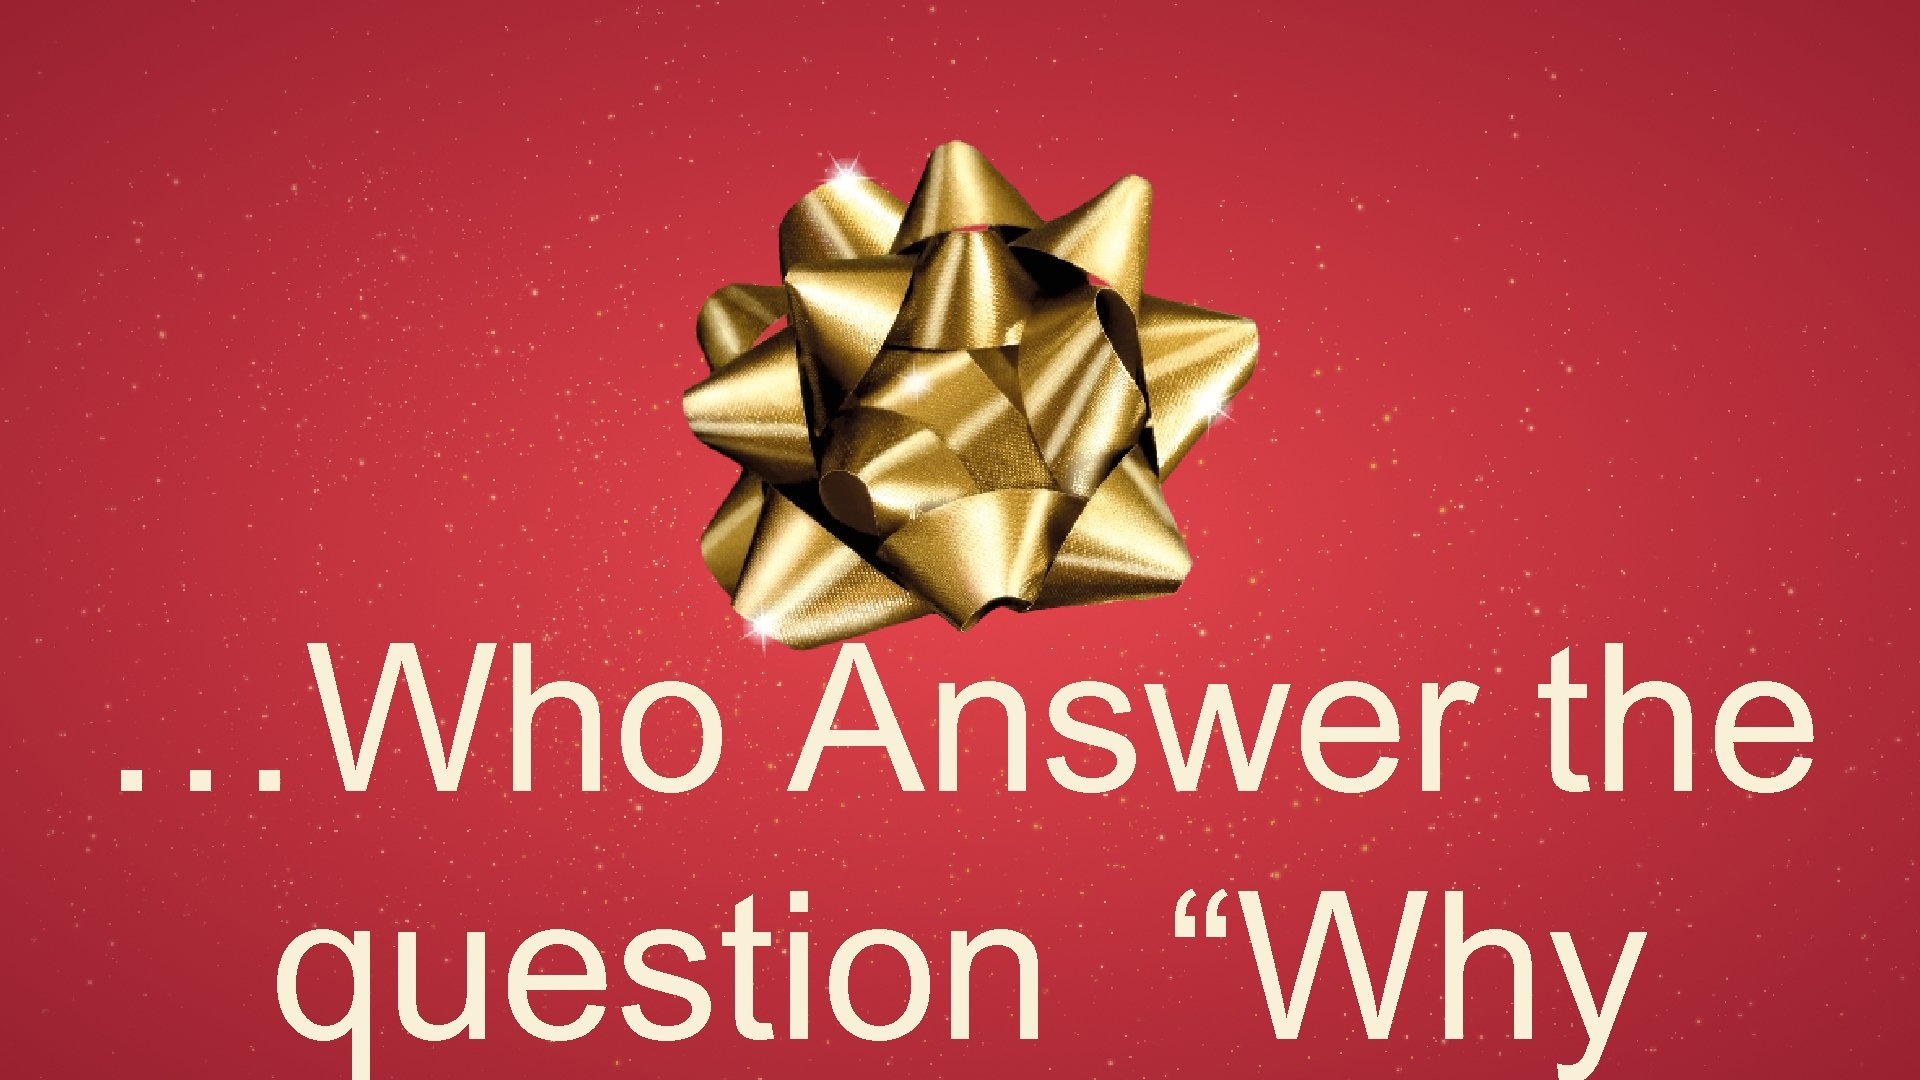 """…Who Answer the question """"Why"""